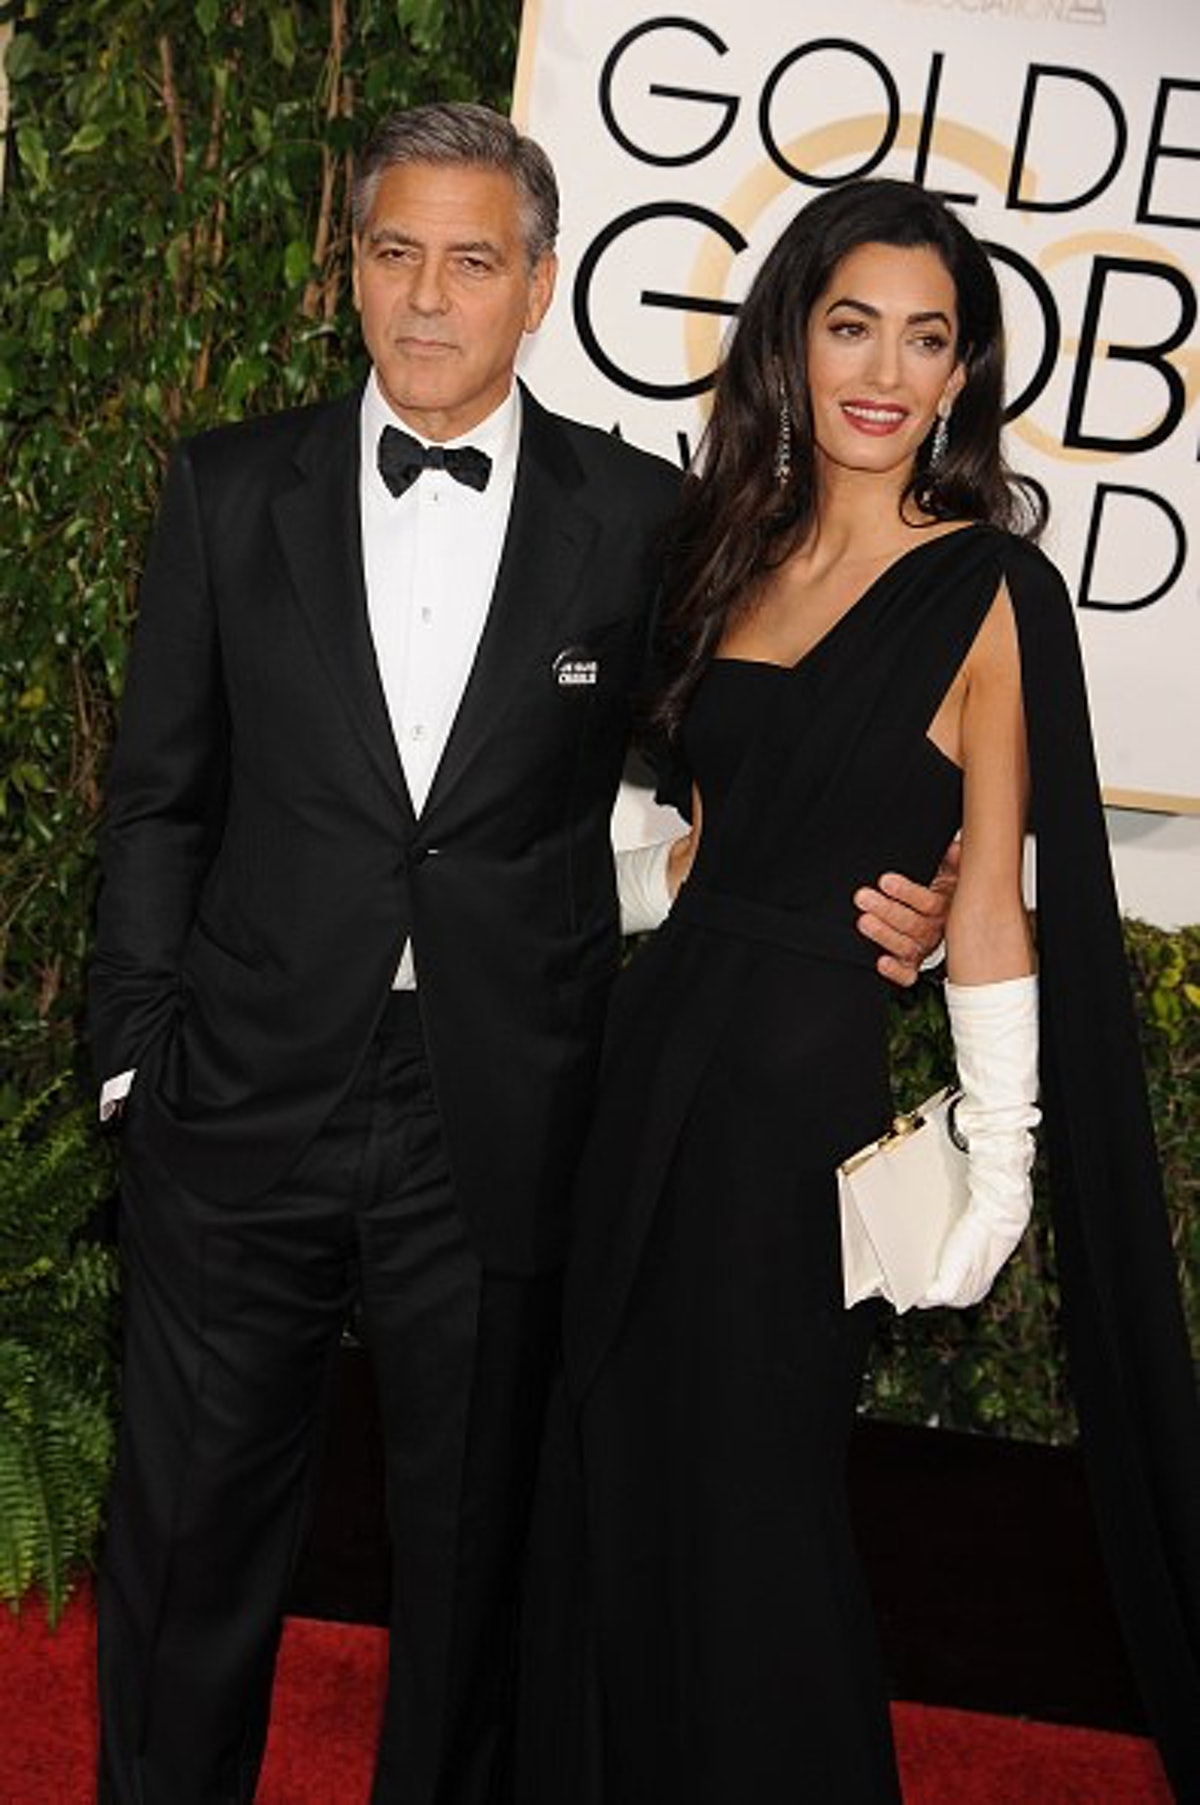 George in a black tux, Amal in a black gown and white gloves